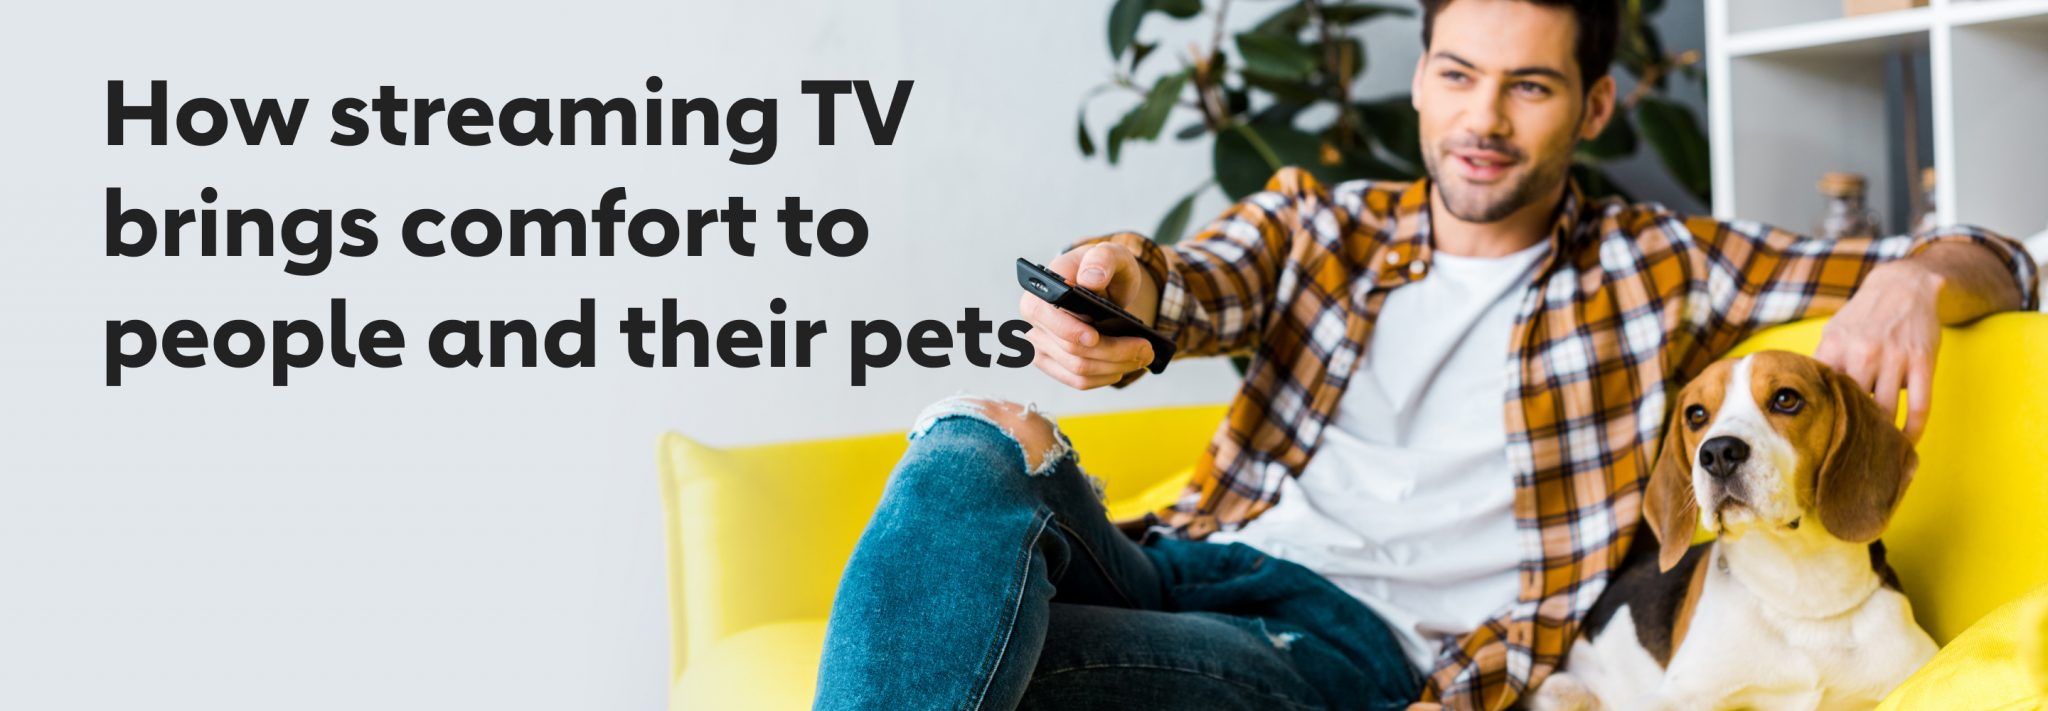 How Streaming TV Brings Comfort to People and Their Pets